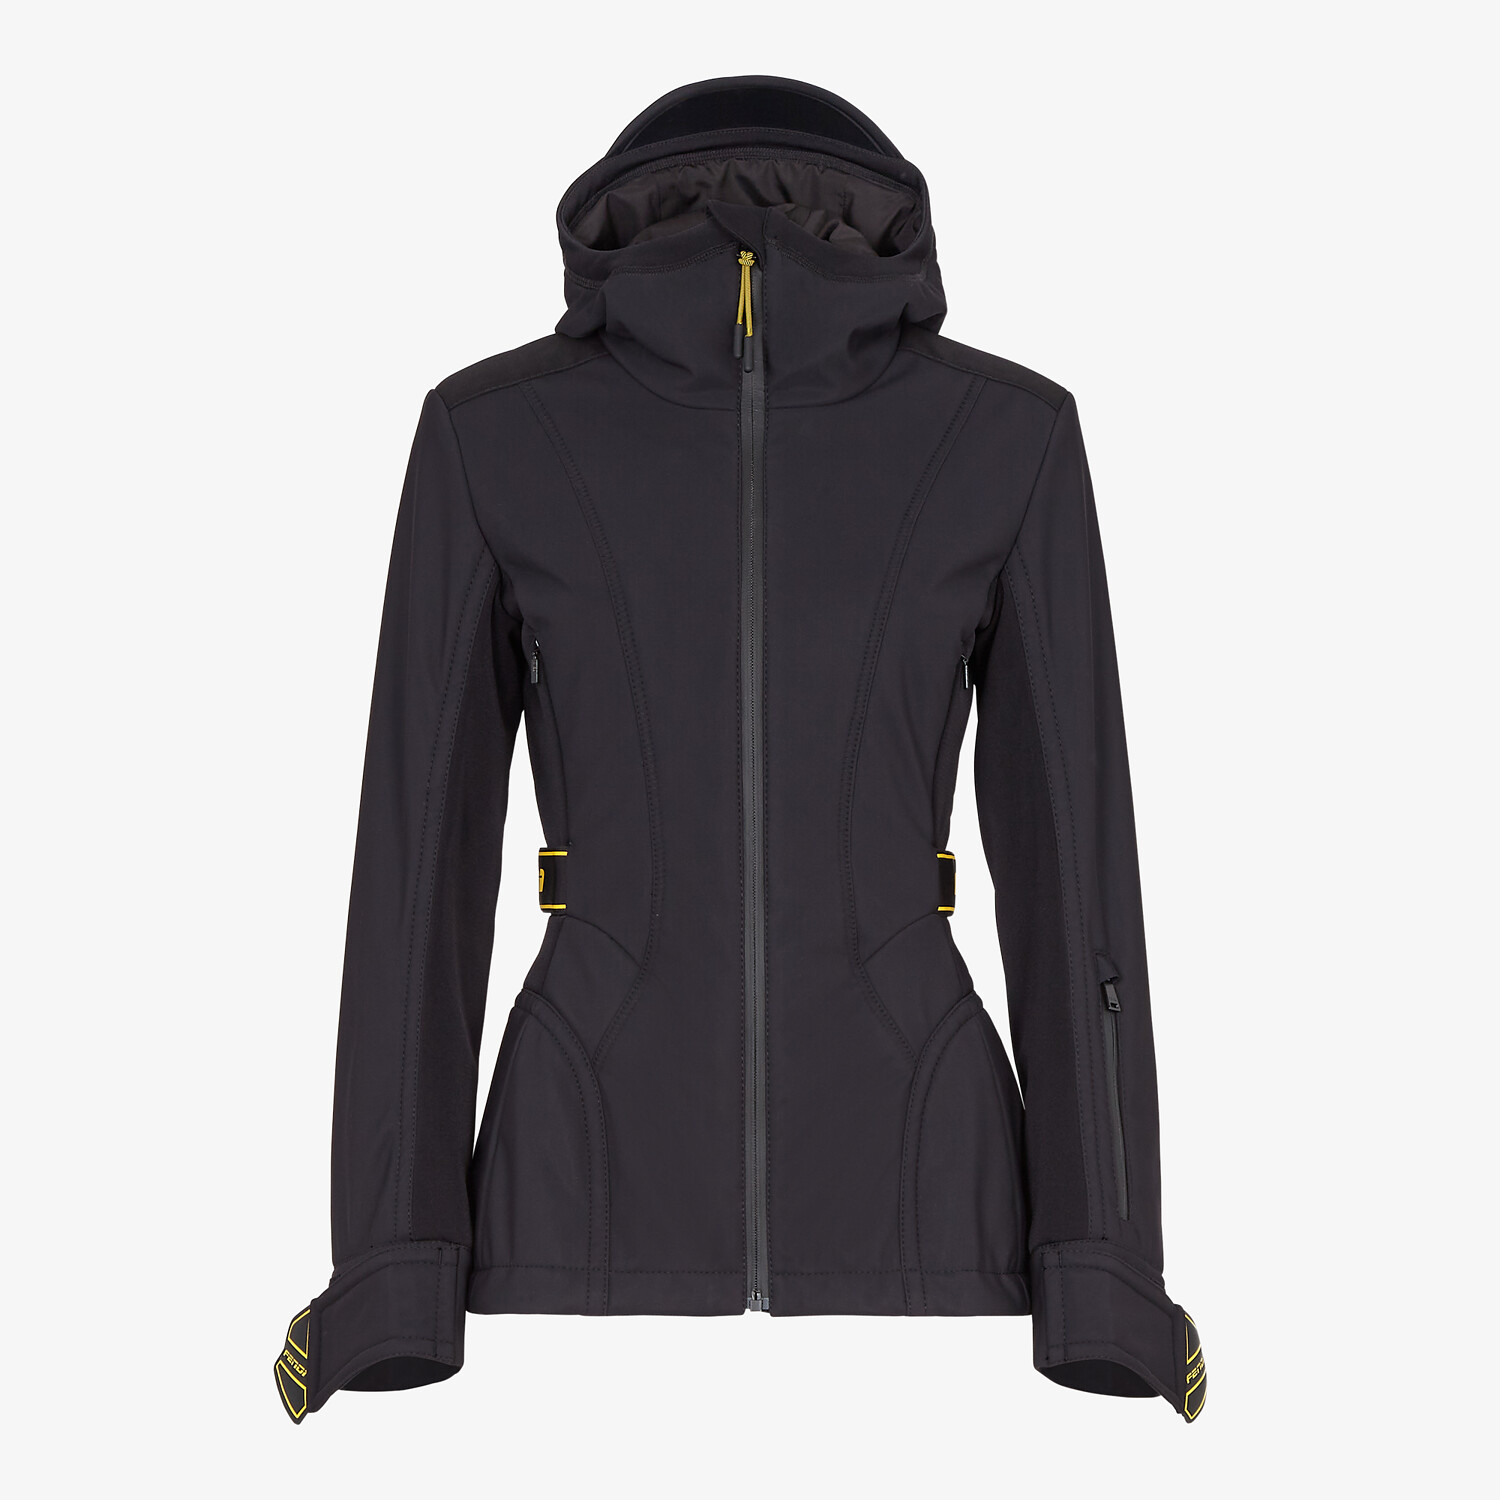 FENDI SKI JACKET - Ski jacket in black tech nylon - view 1 detail